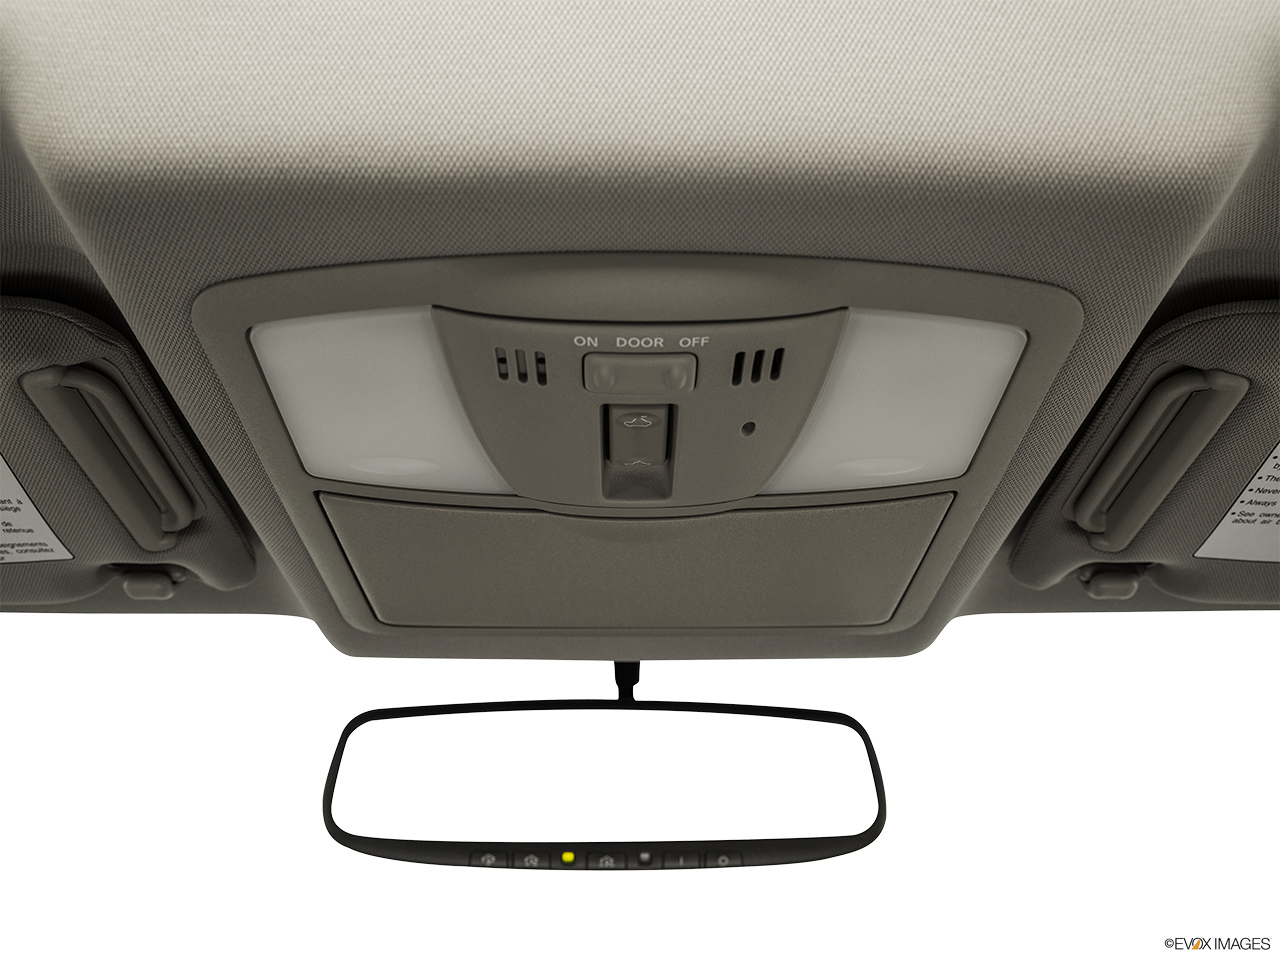 2015 Infiniti Q40 Base Courtesy lamps/ceiling controls.